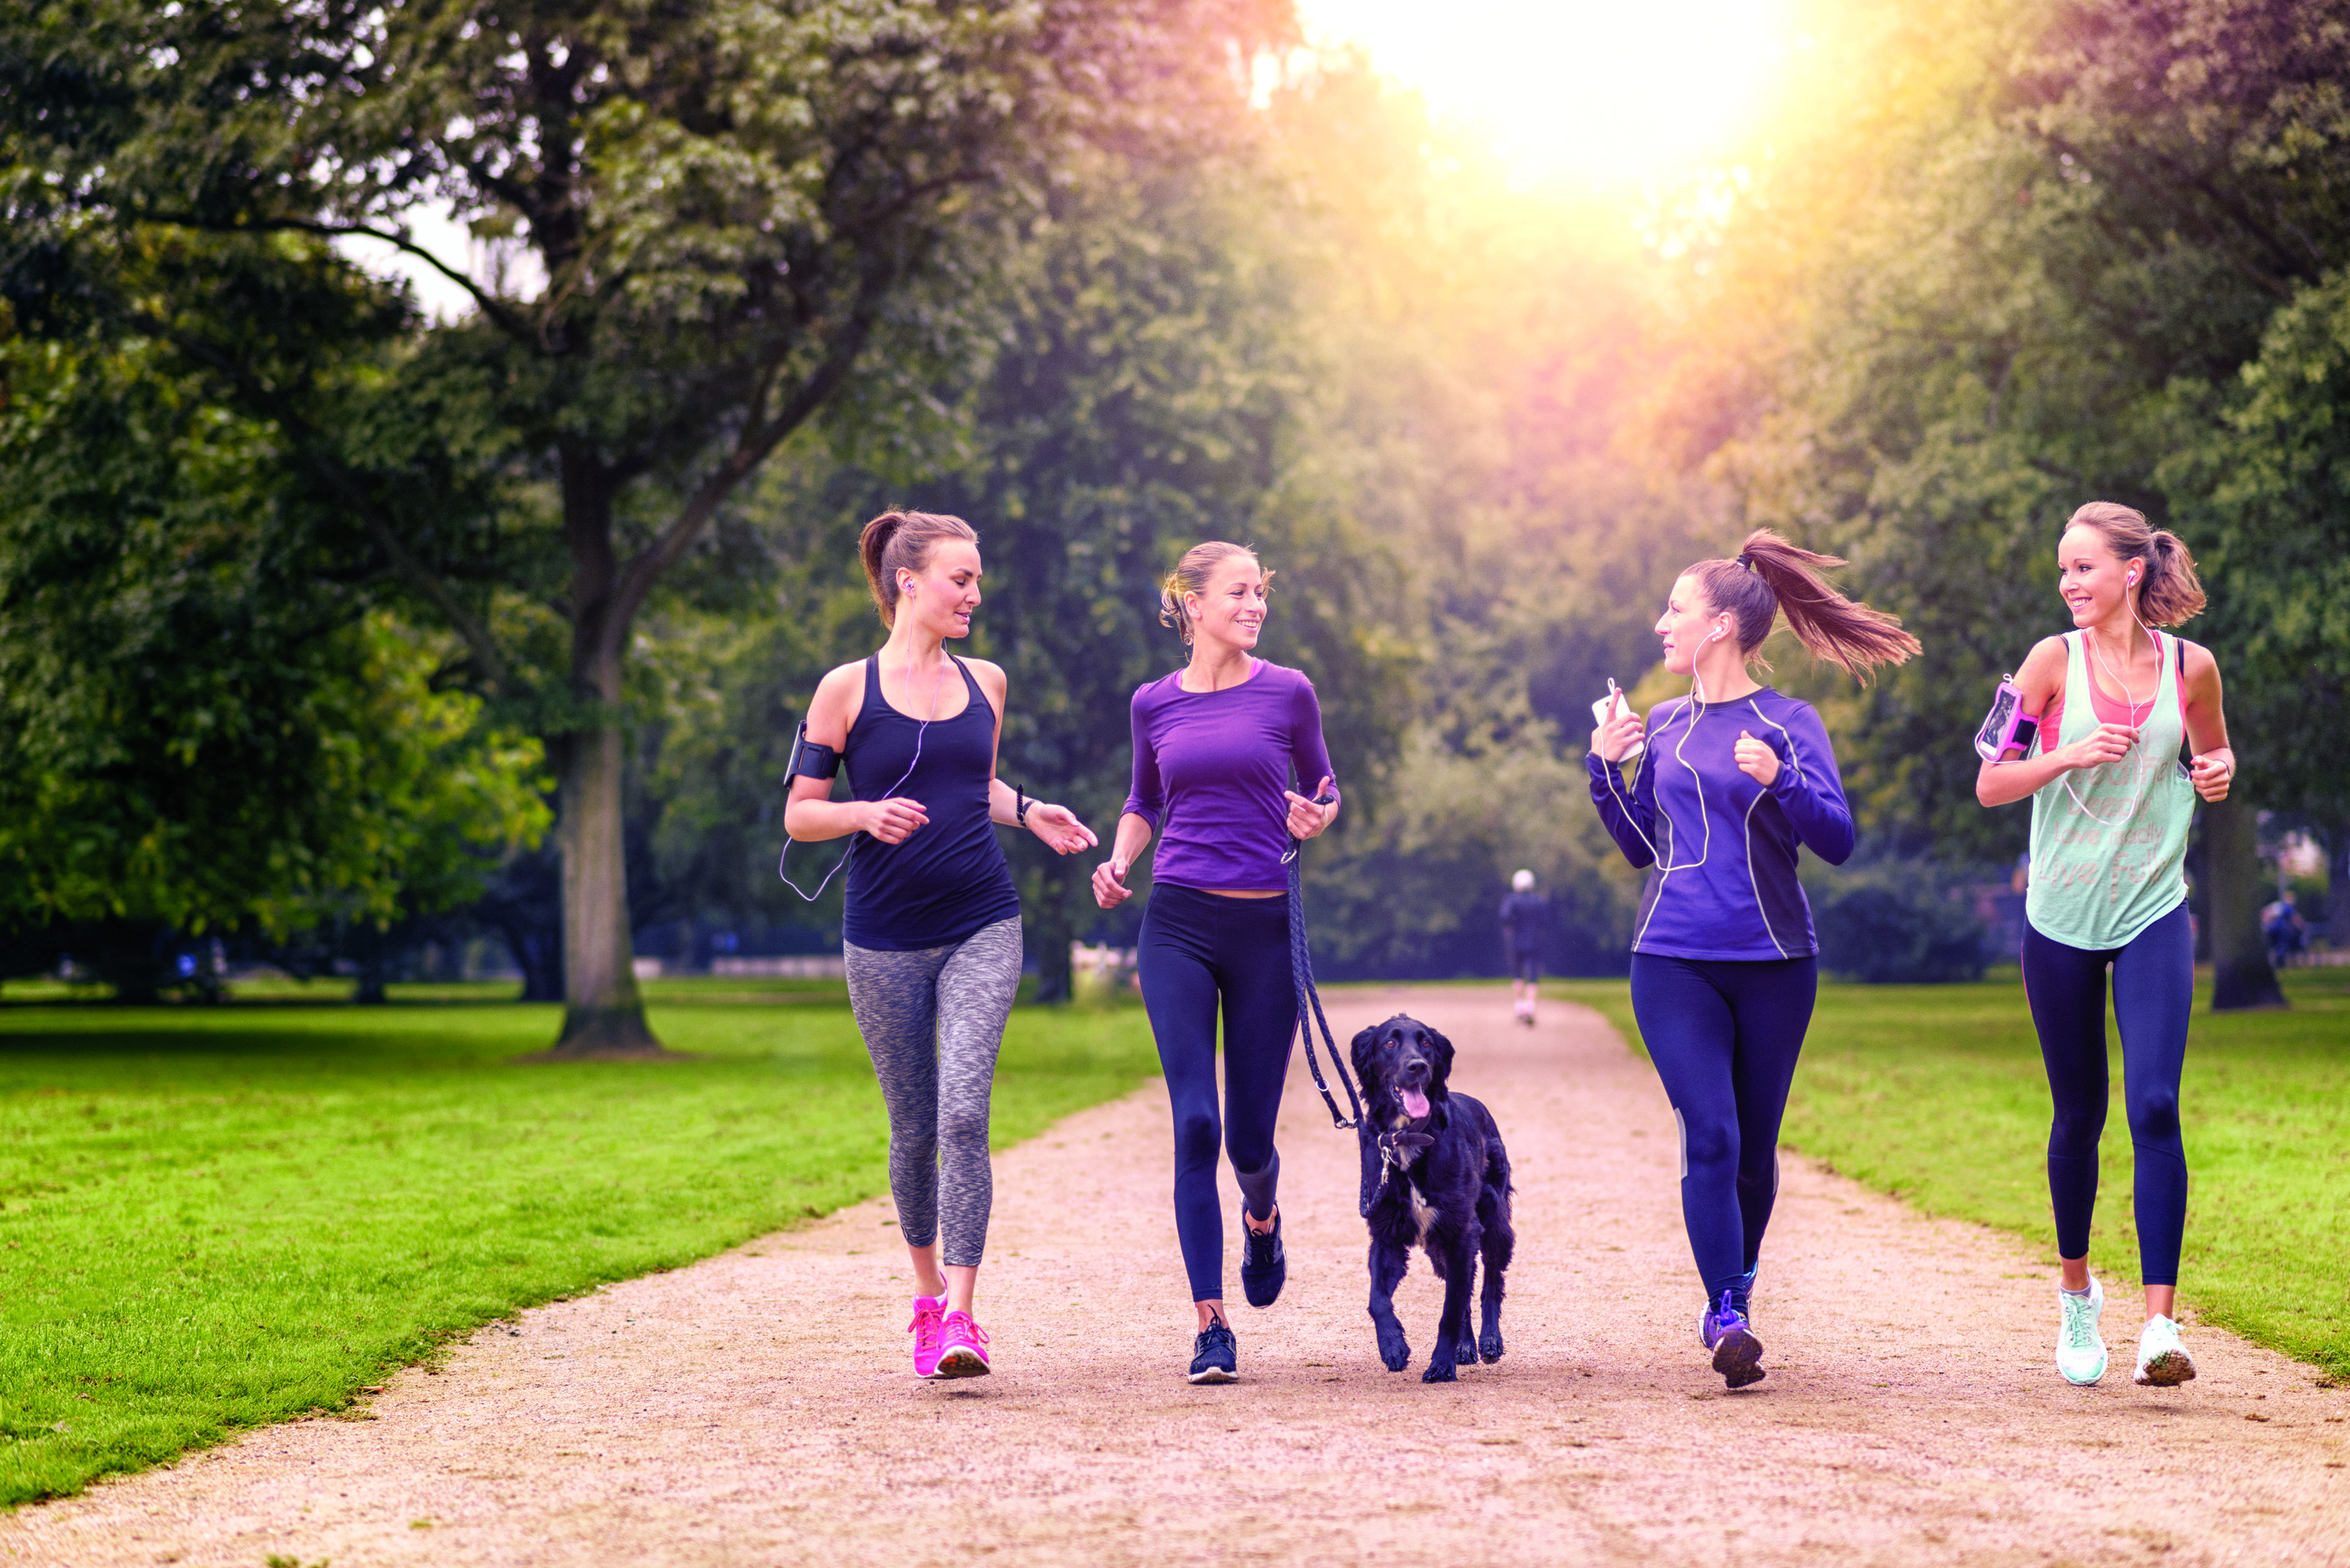 Four friends jogging with a dog in a park.